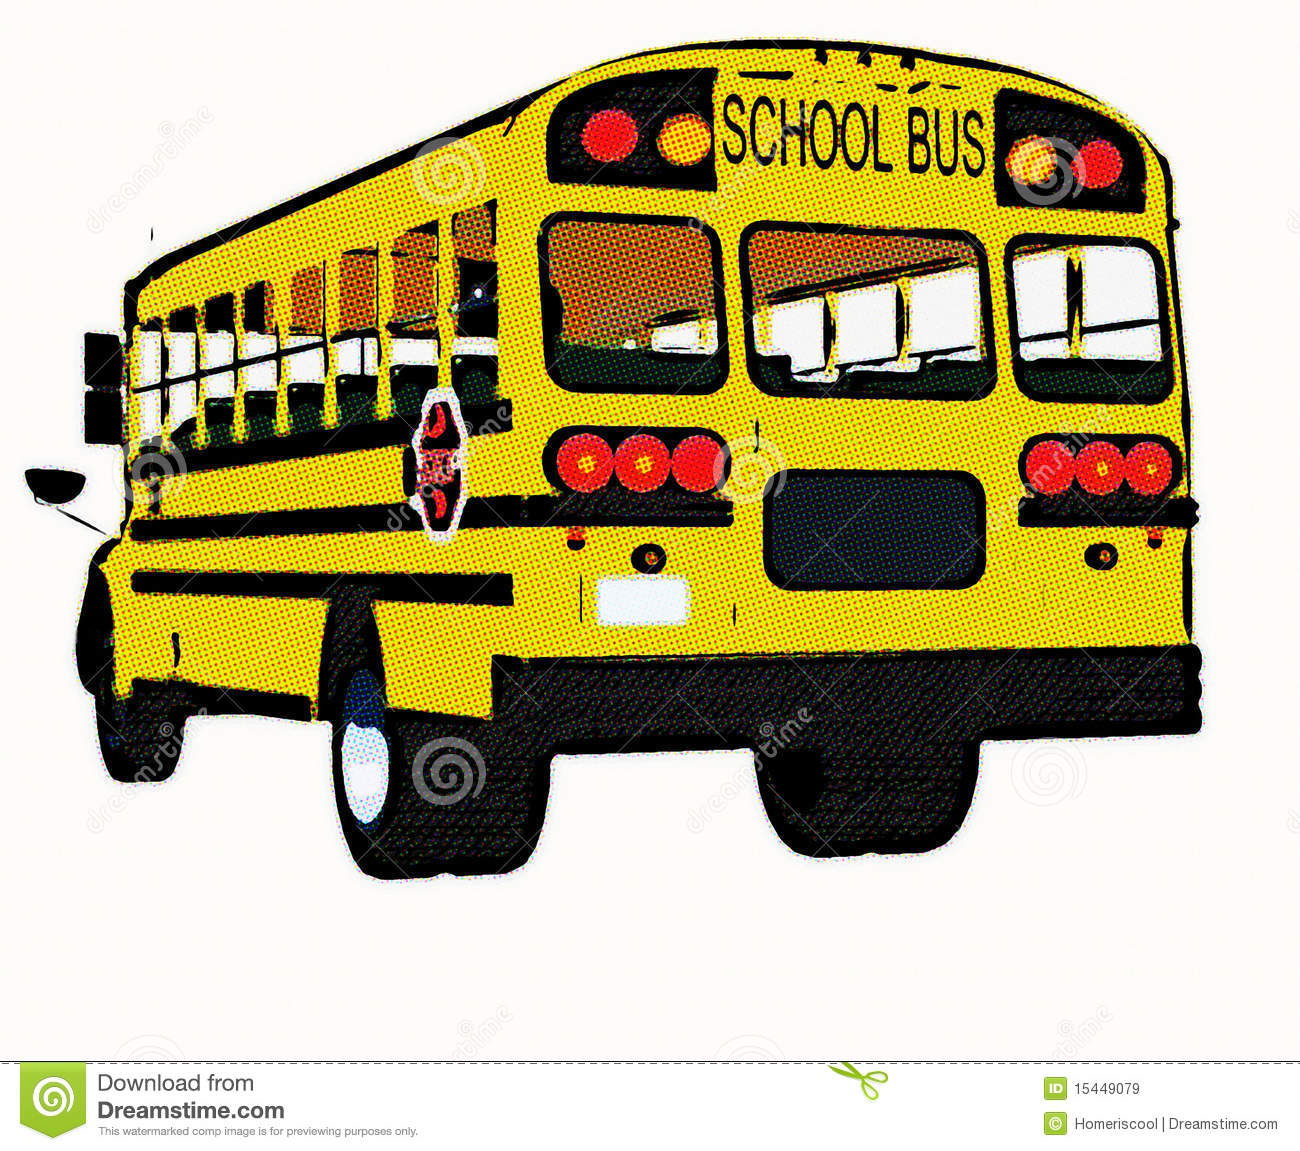 School bus superman clipart black and white download Yellow american school bus | Clipart Panda - Free Clipart Images black and white download